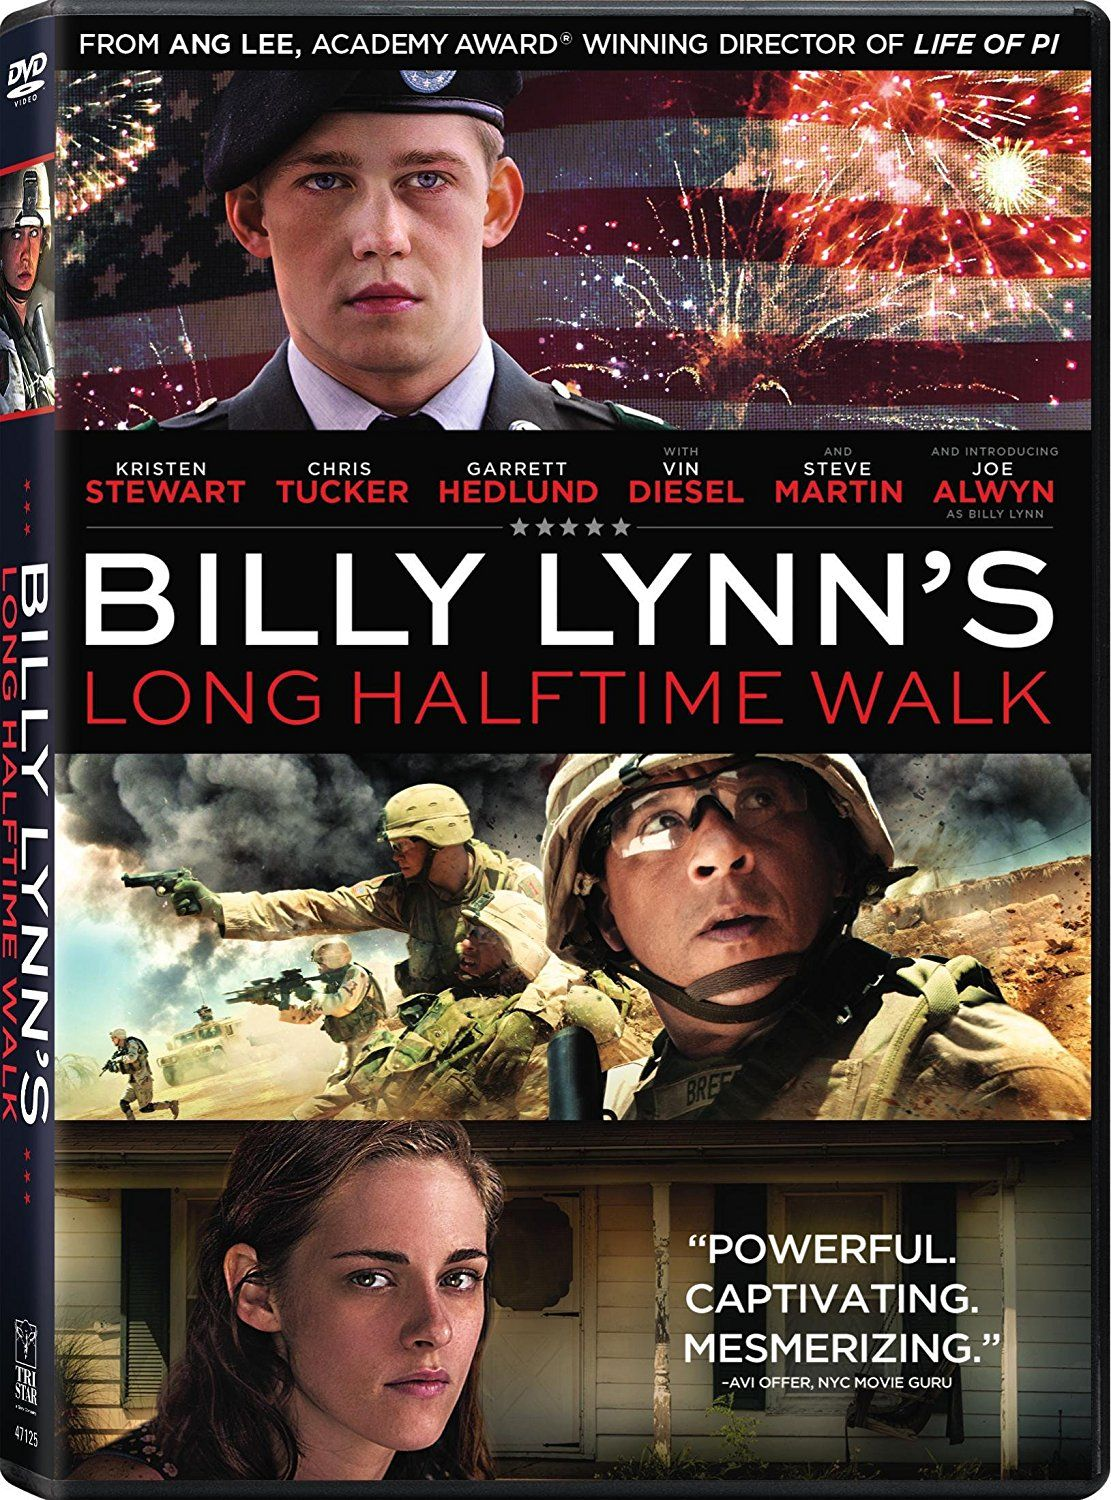 New on DVD and Bluray February 14, 2017 Billy lynn